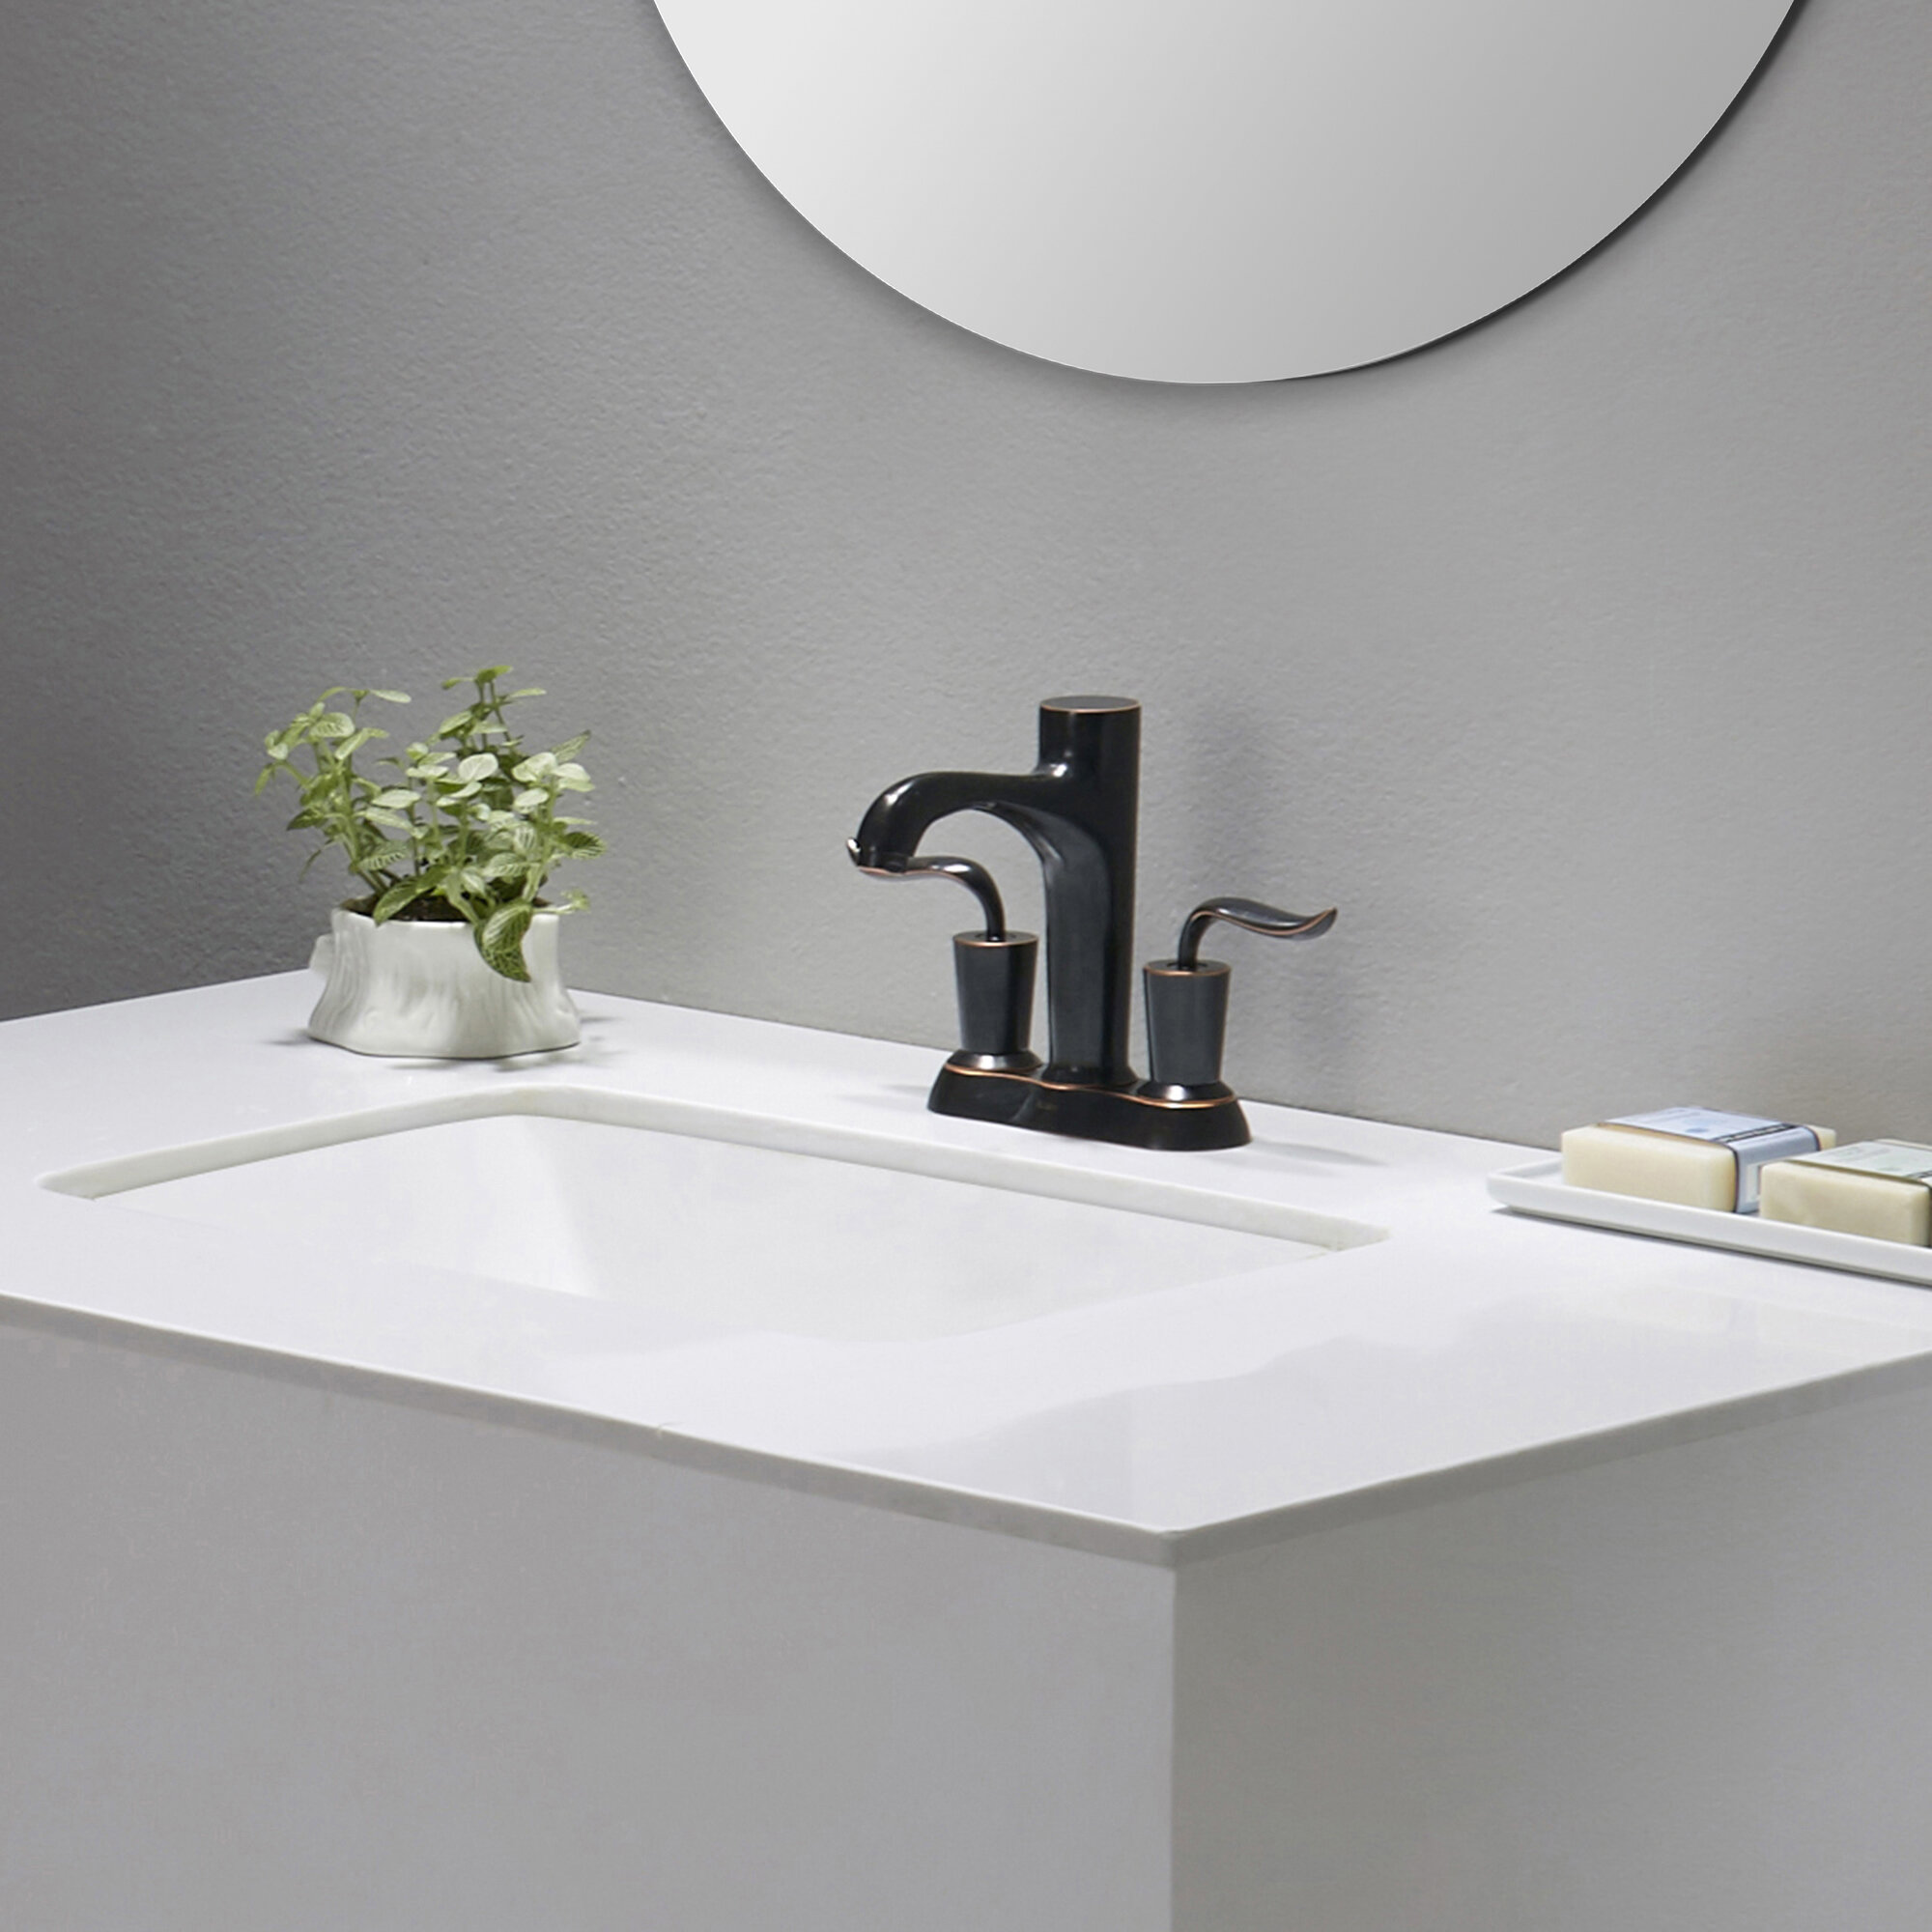 square with sink and bath full contemporary white ideas kohler magnificent dazzling rectangular small size undermount accesories interior modern bathroom shower fabulous amazing sinks basin of trends